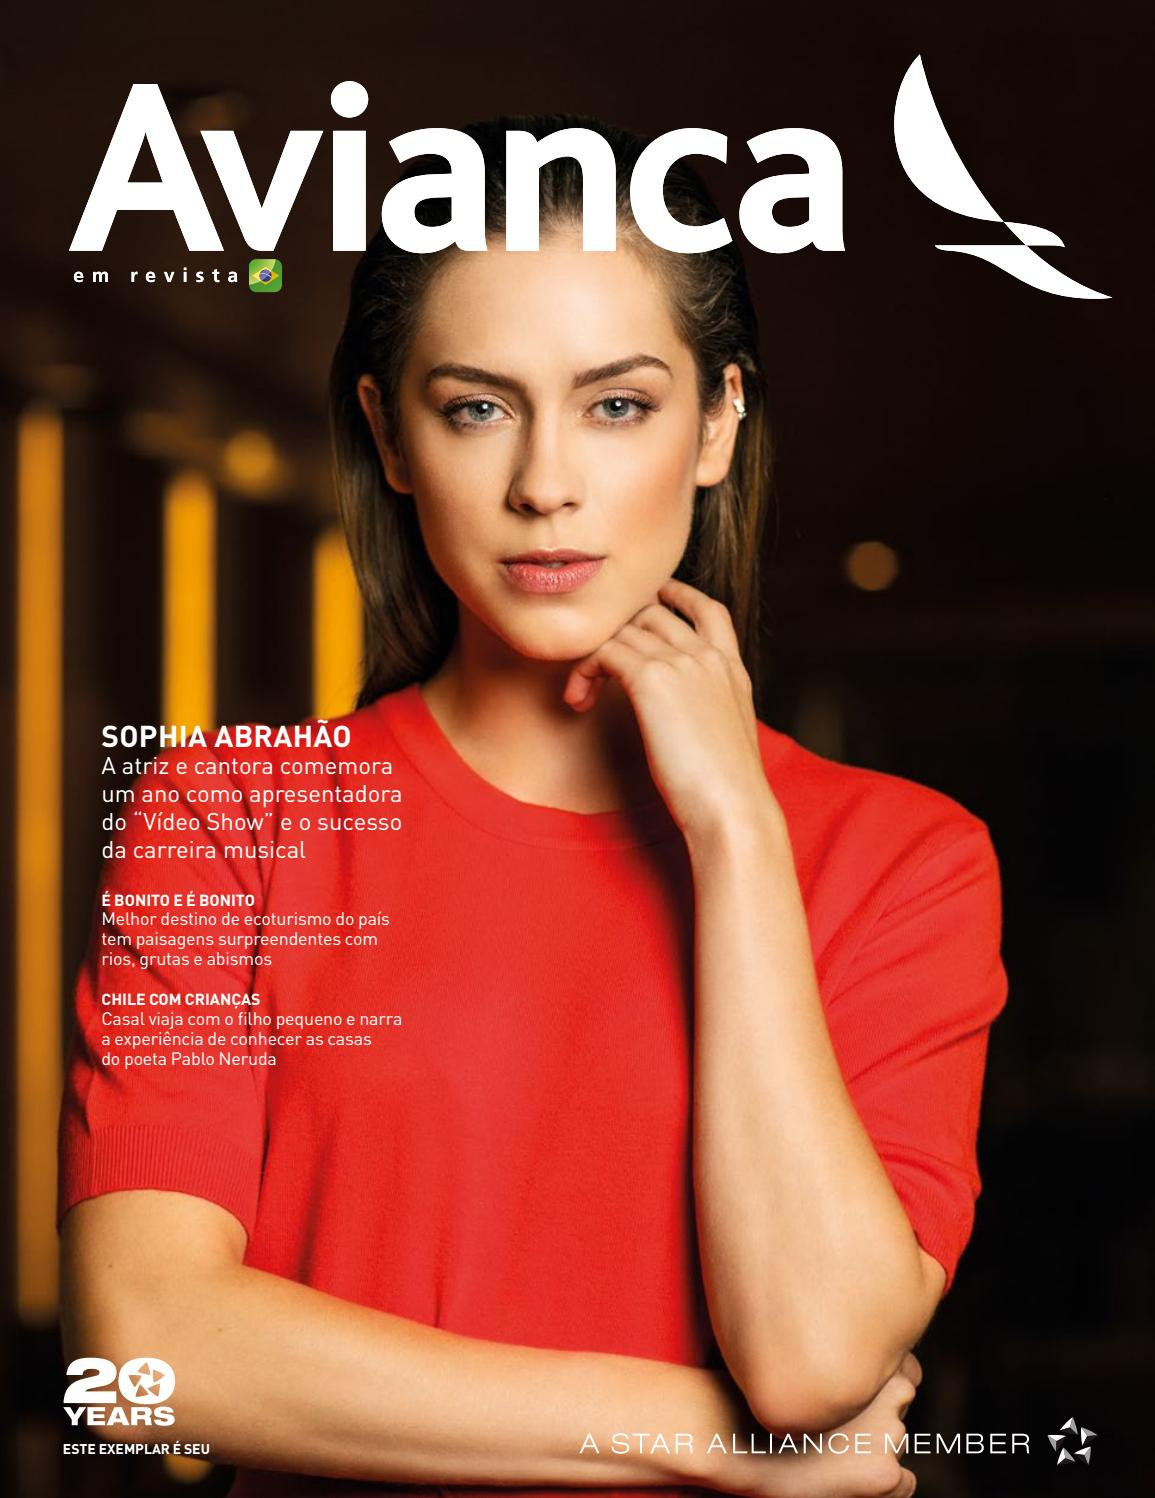 92 sophia abraho by avianca em revista issuu 92 sophia abraho by avianca em revista issuu fandeluxe Image collections